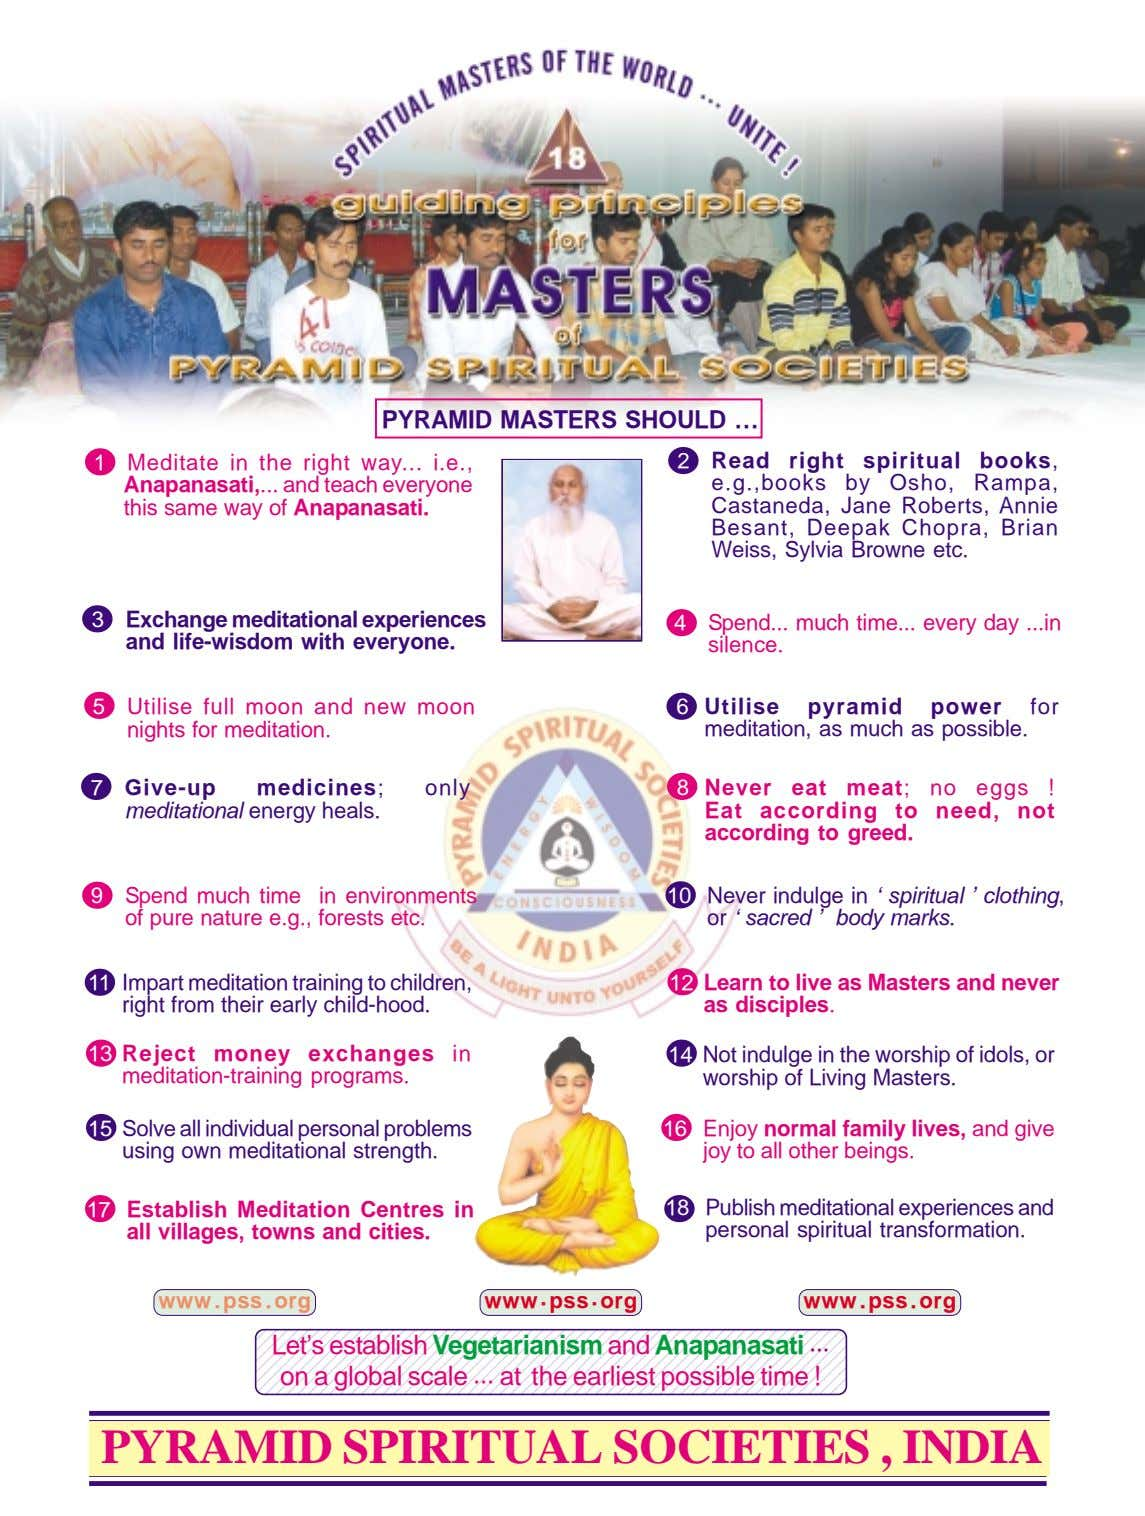 PYRAMID MASTERS SHOULD … 1 Meditate in the right way i.e., 2 Anapanasati, and teach